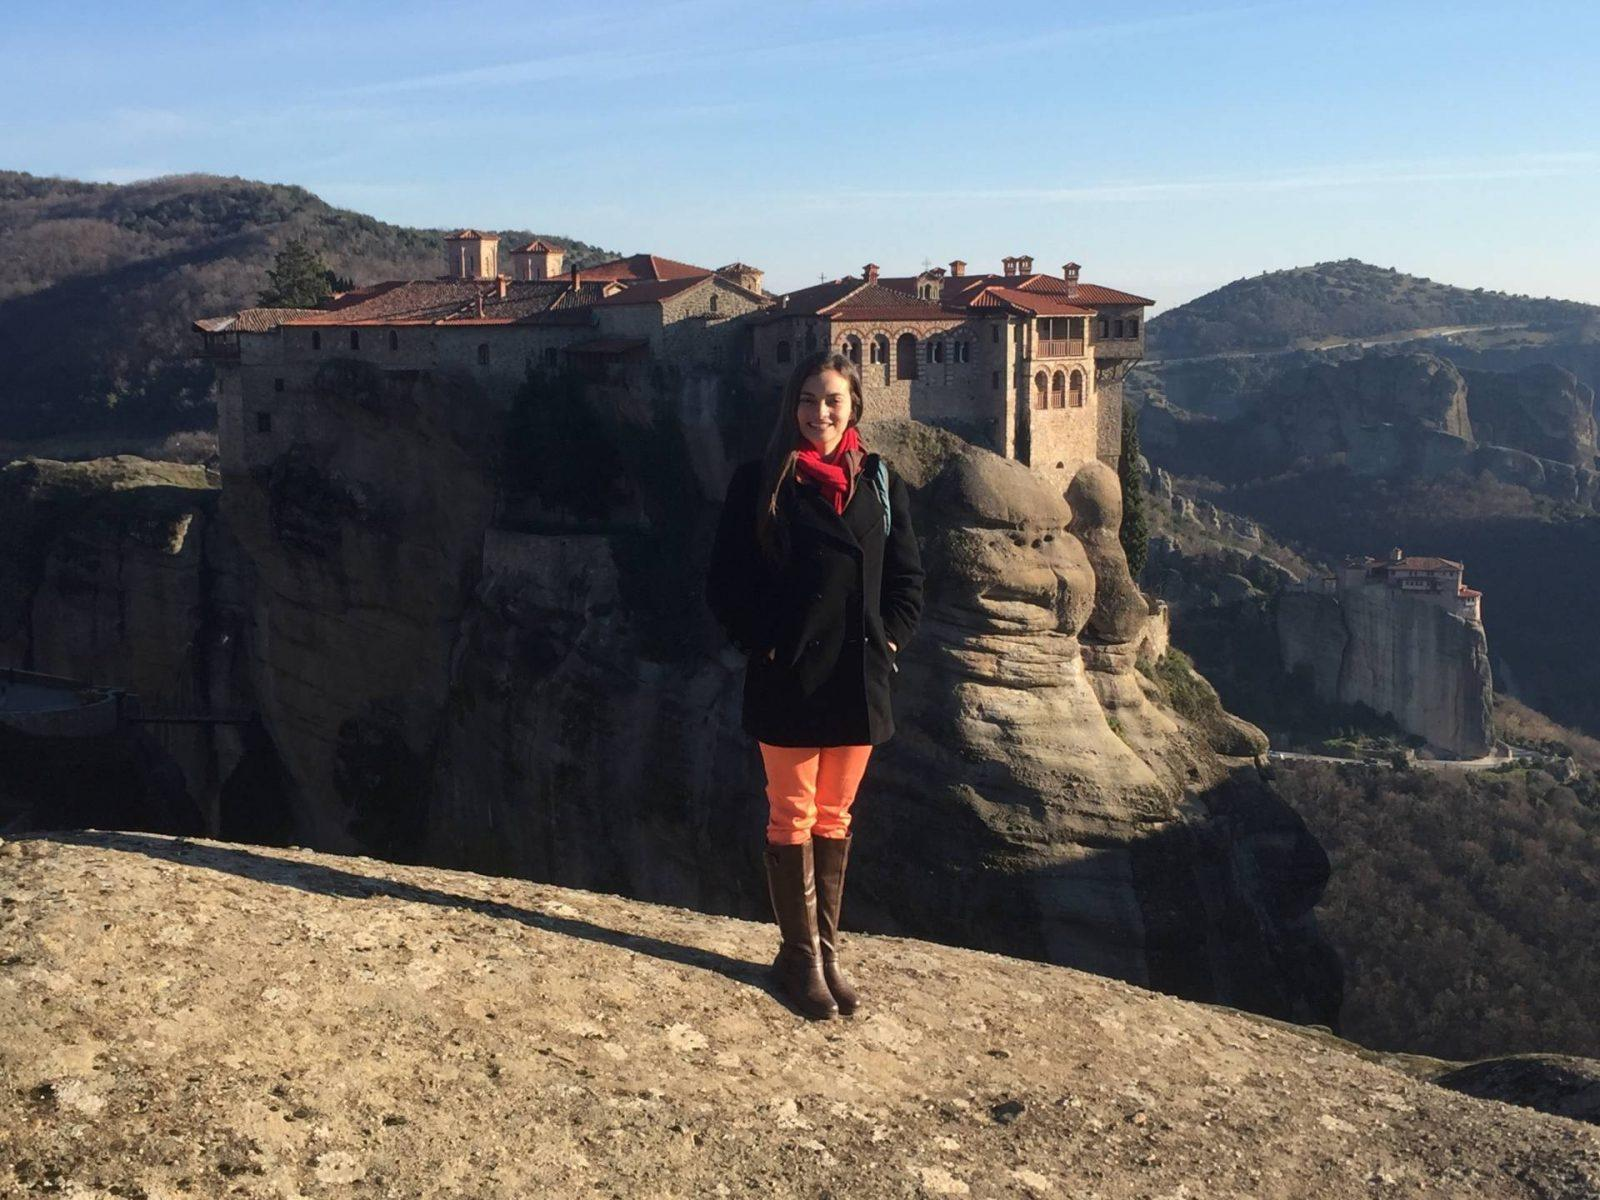 Visiting the Monasteries of Meteora, Greece